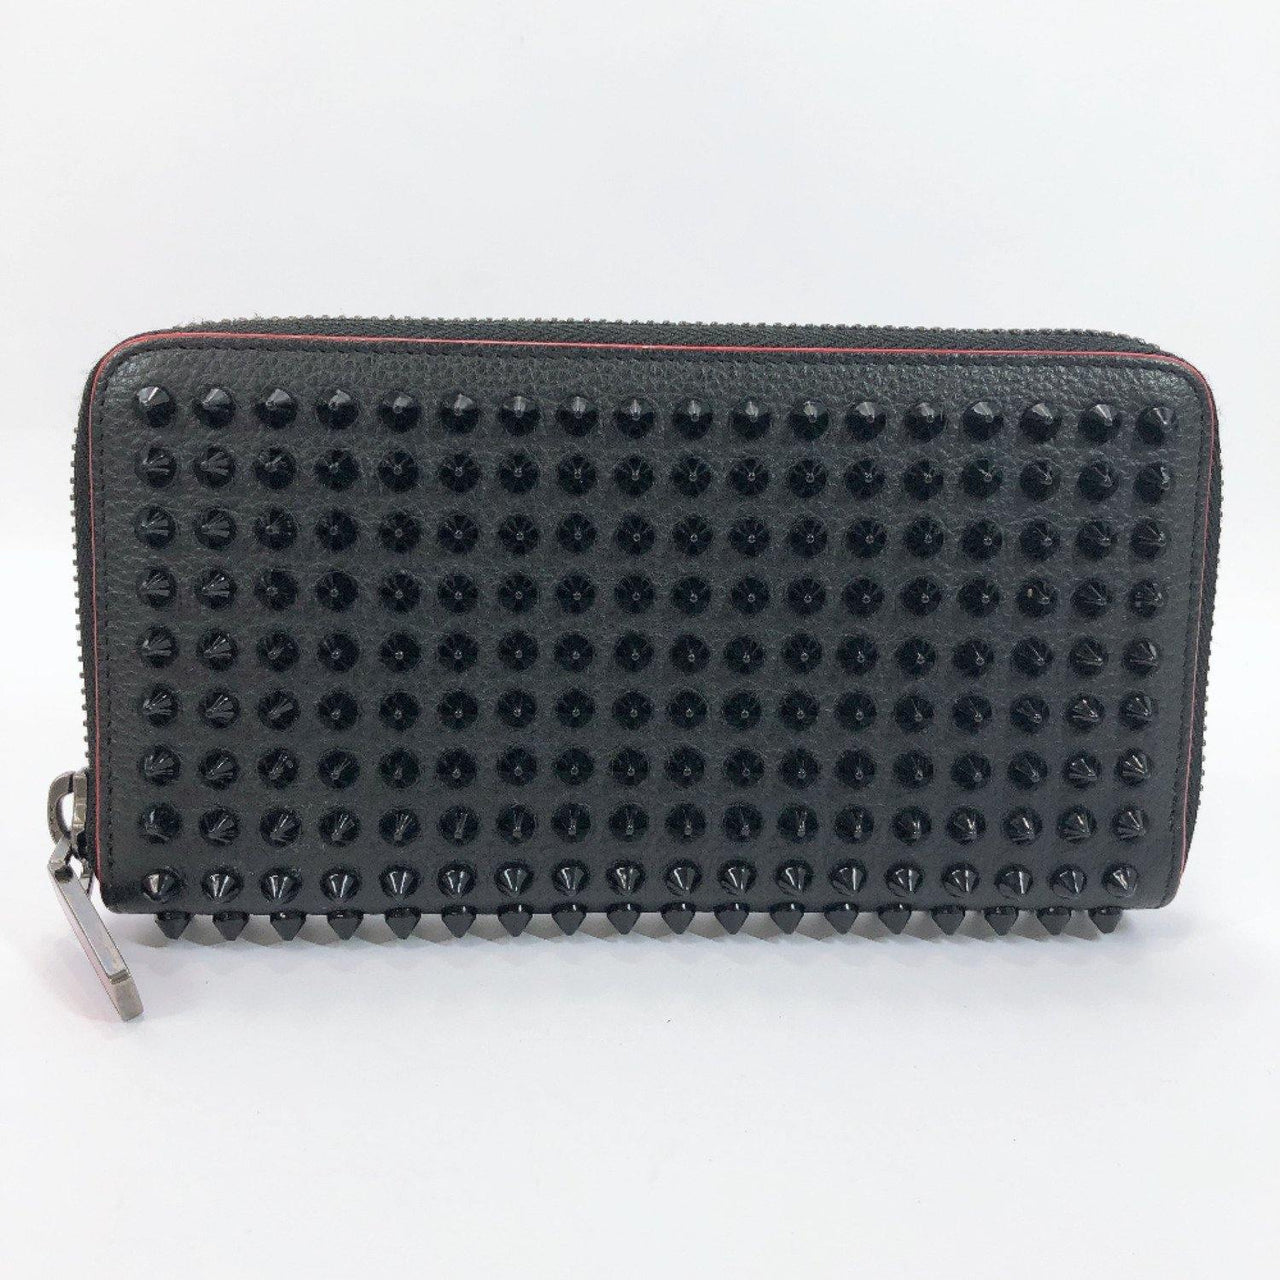 Christian Louboutin purse 1165044 Round zip Panettone studs leather black Women Used - JP-BRANDS.com